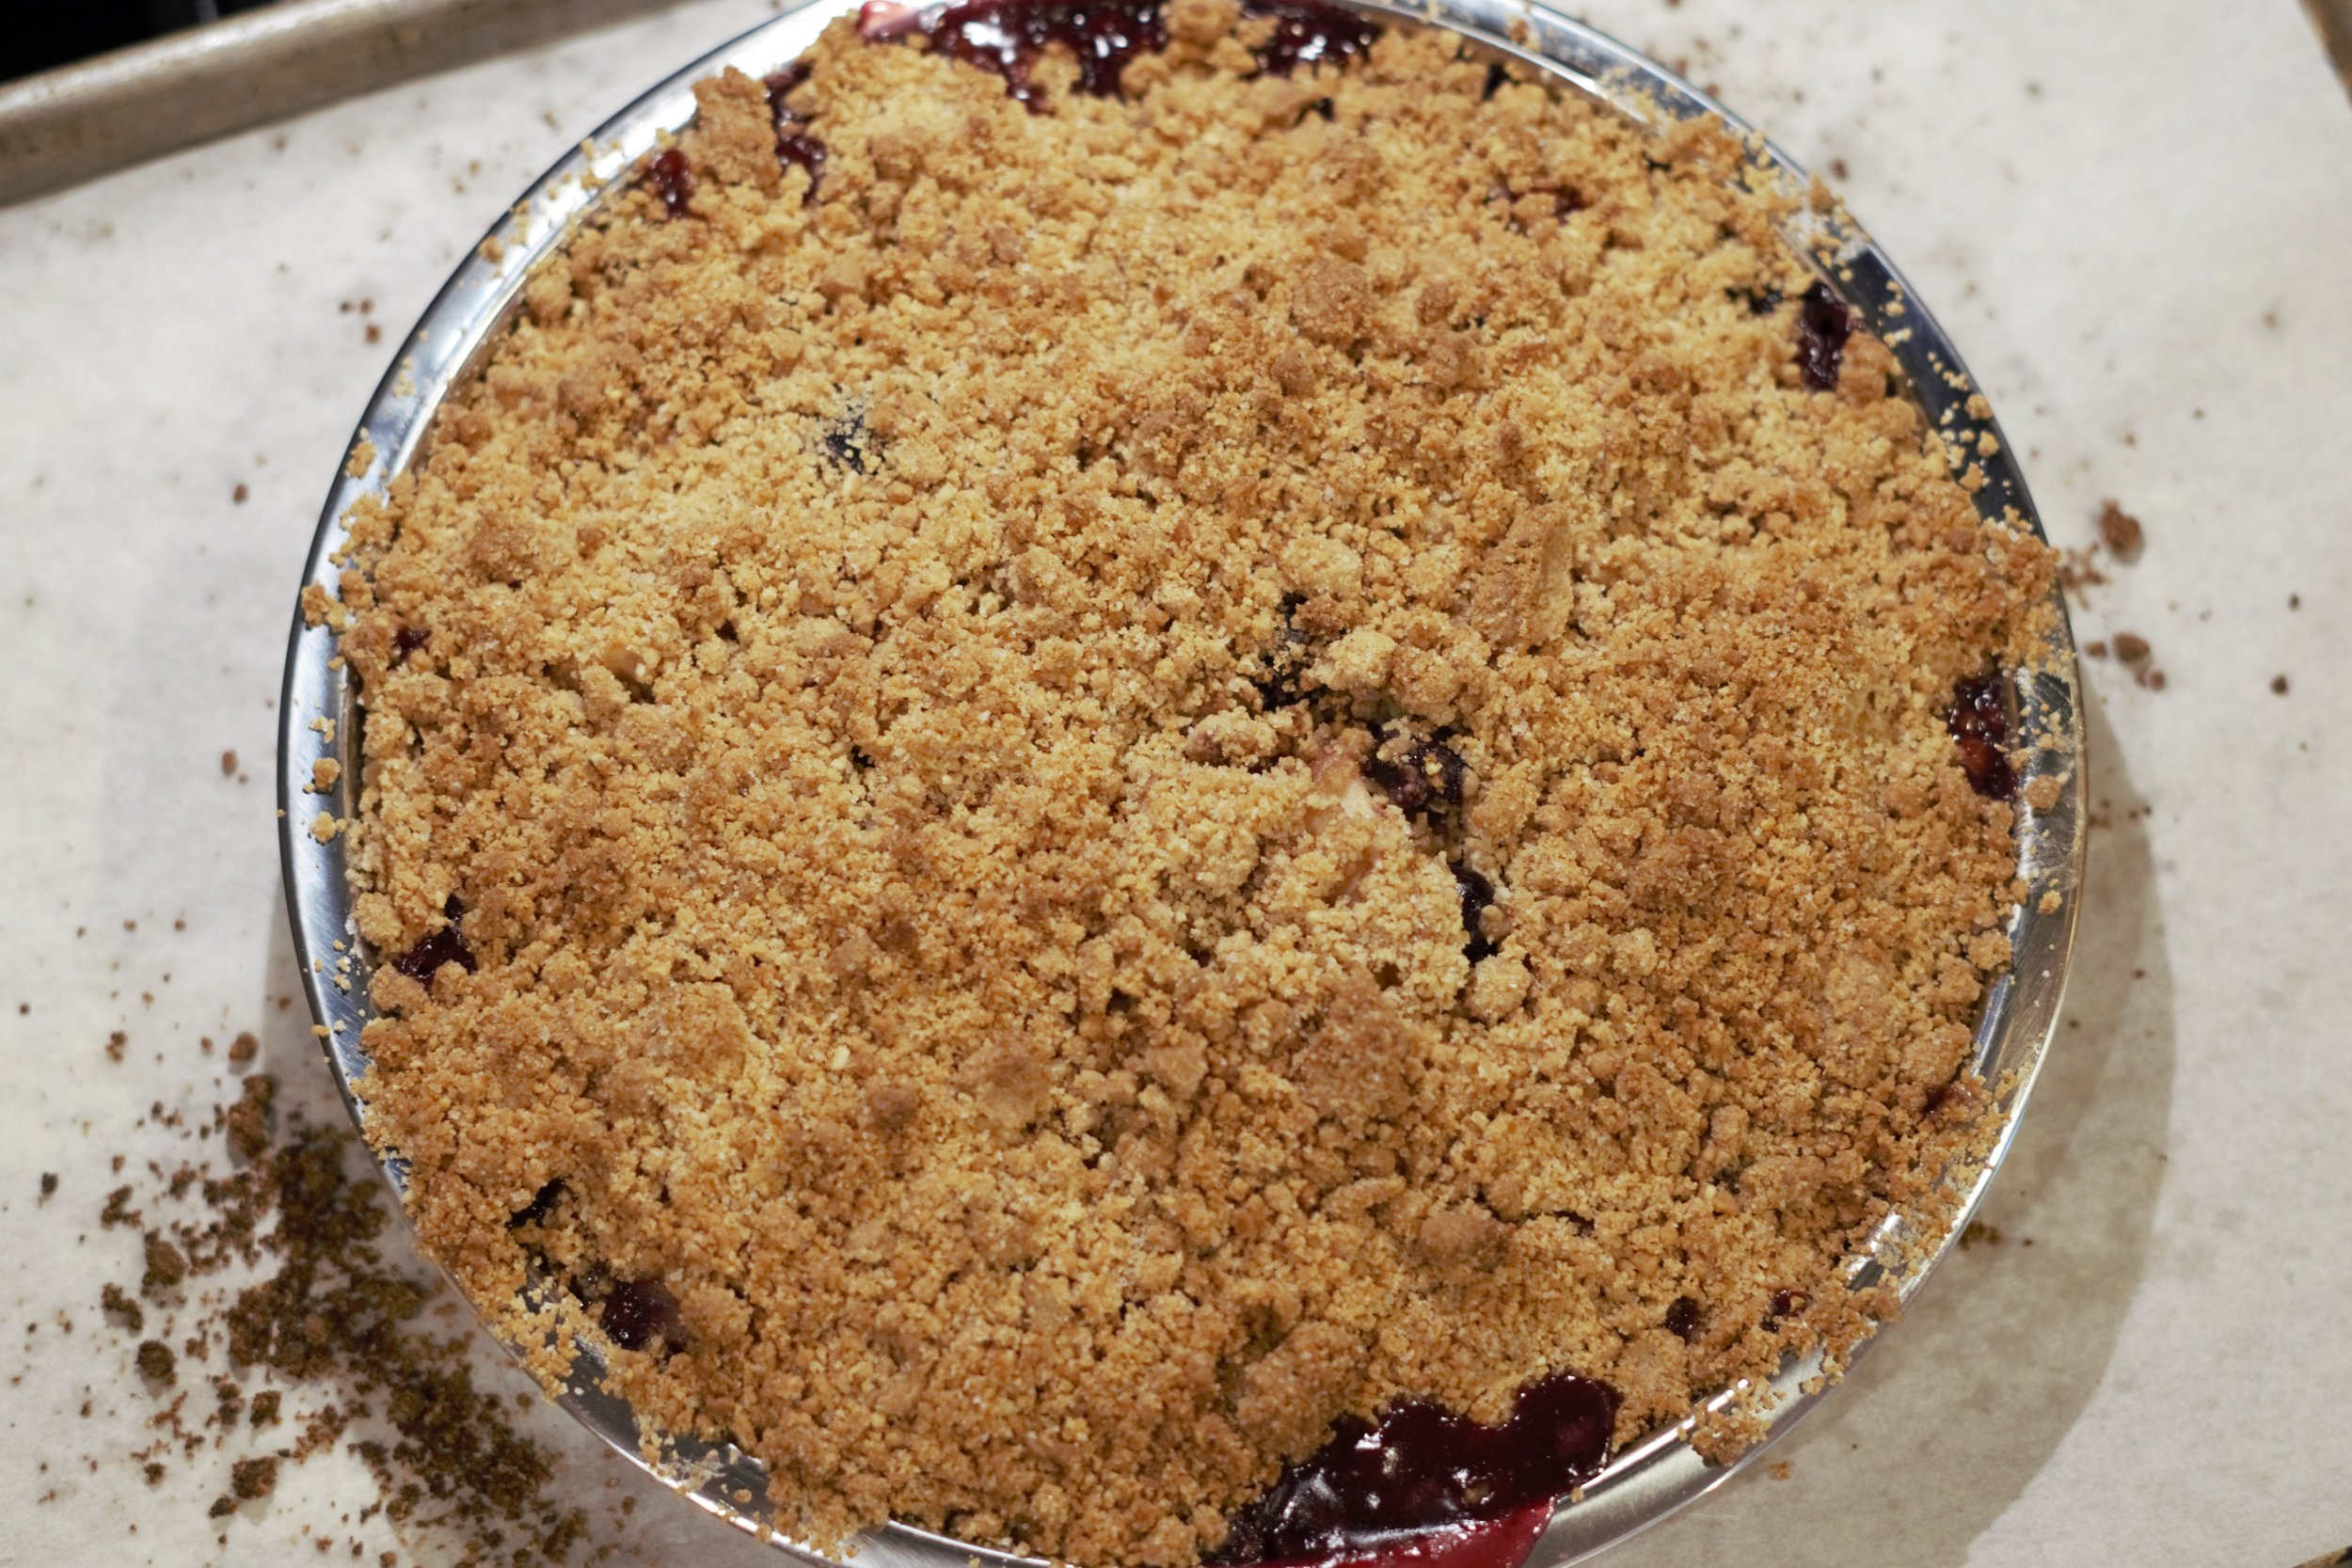 Biscotti crumble baked in the oven